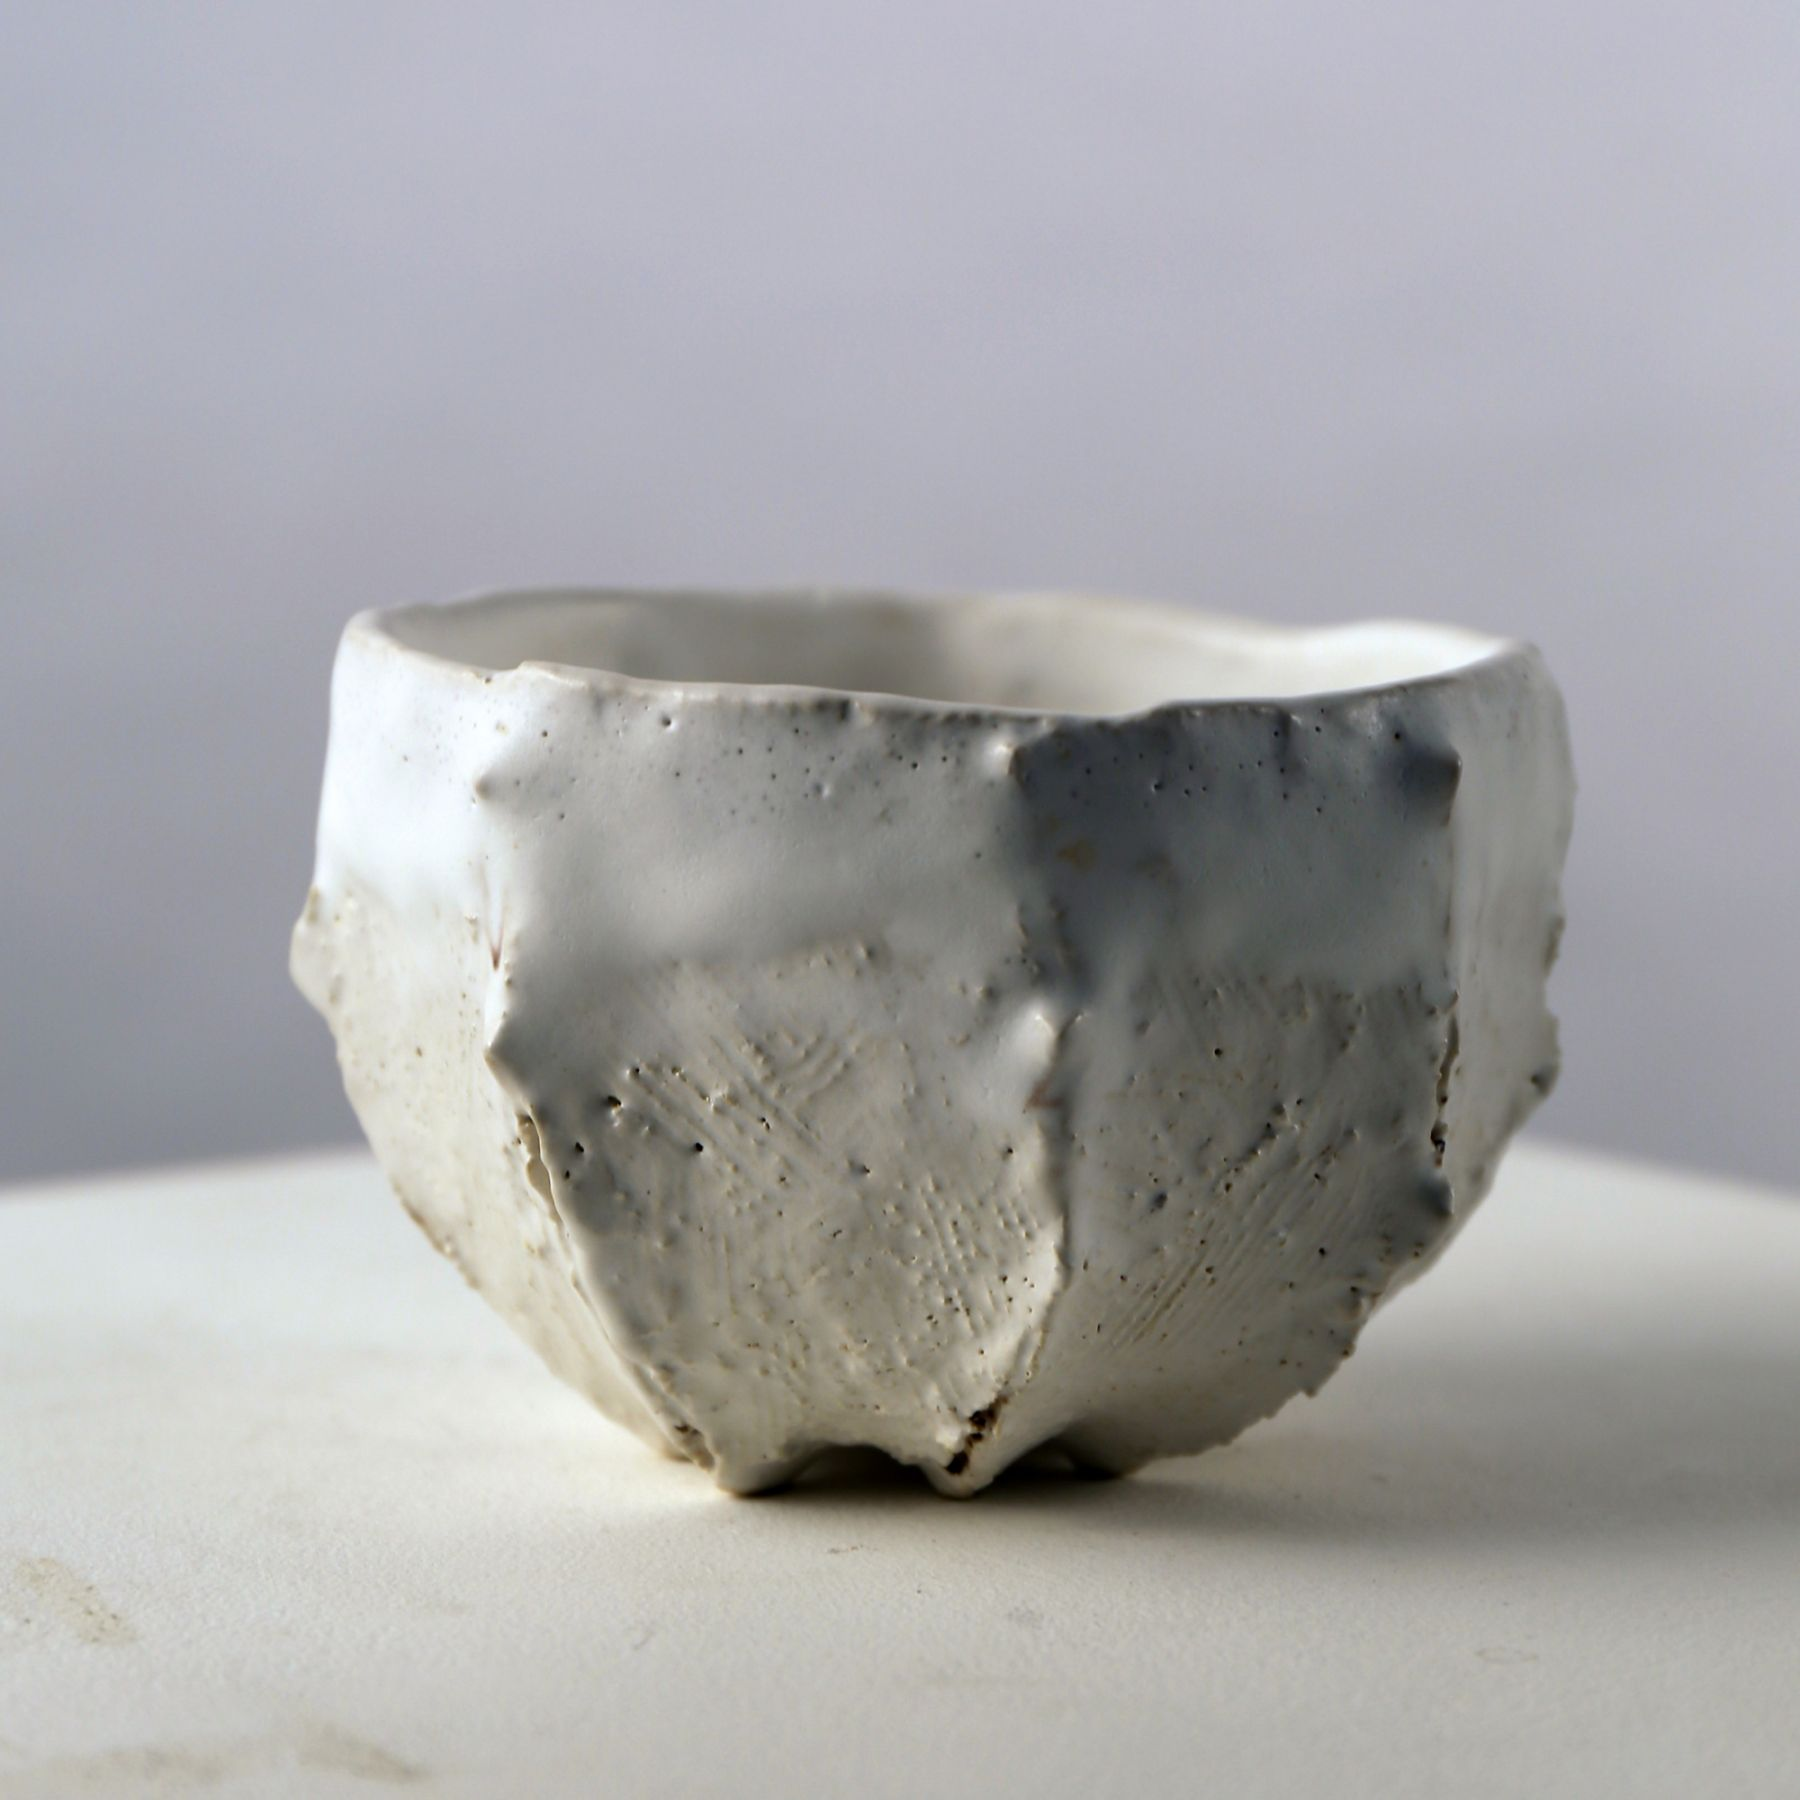 Matte white-glazed ribbed teabowl with small protrusions and interior pool of crackled glaze, 2007